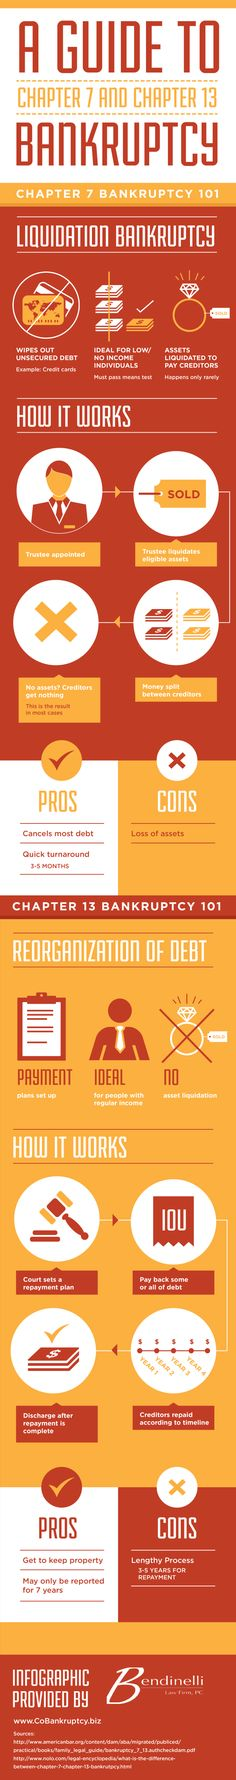 A Guide to Chapter 7 and Chapter 13 Bankruptcy Infographic